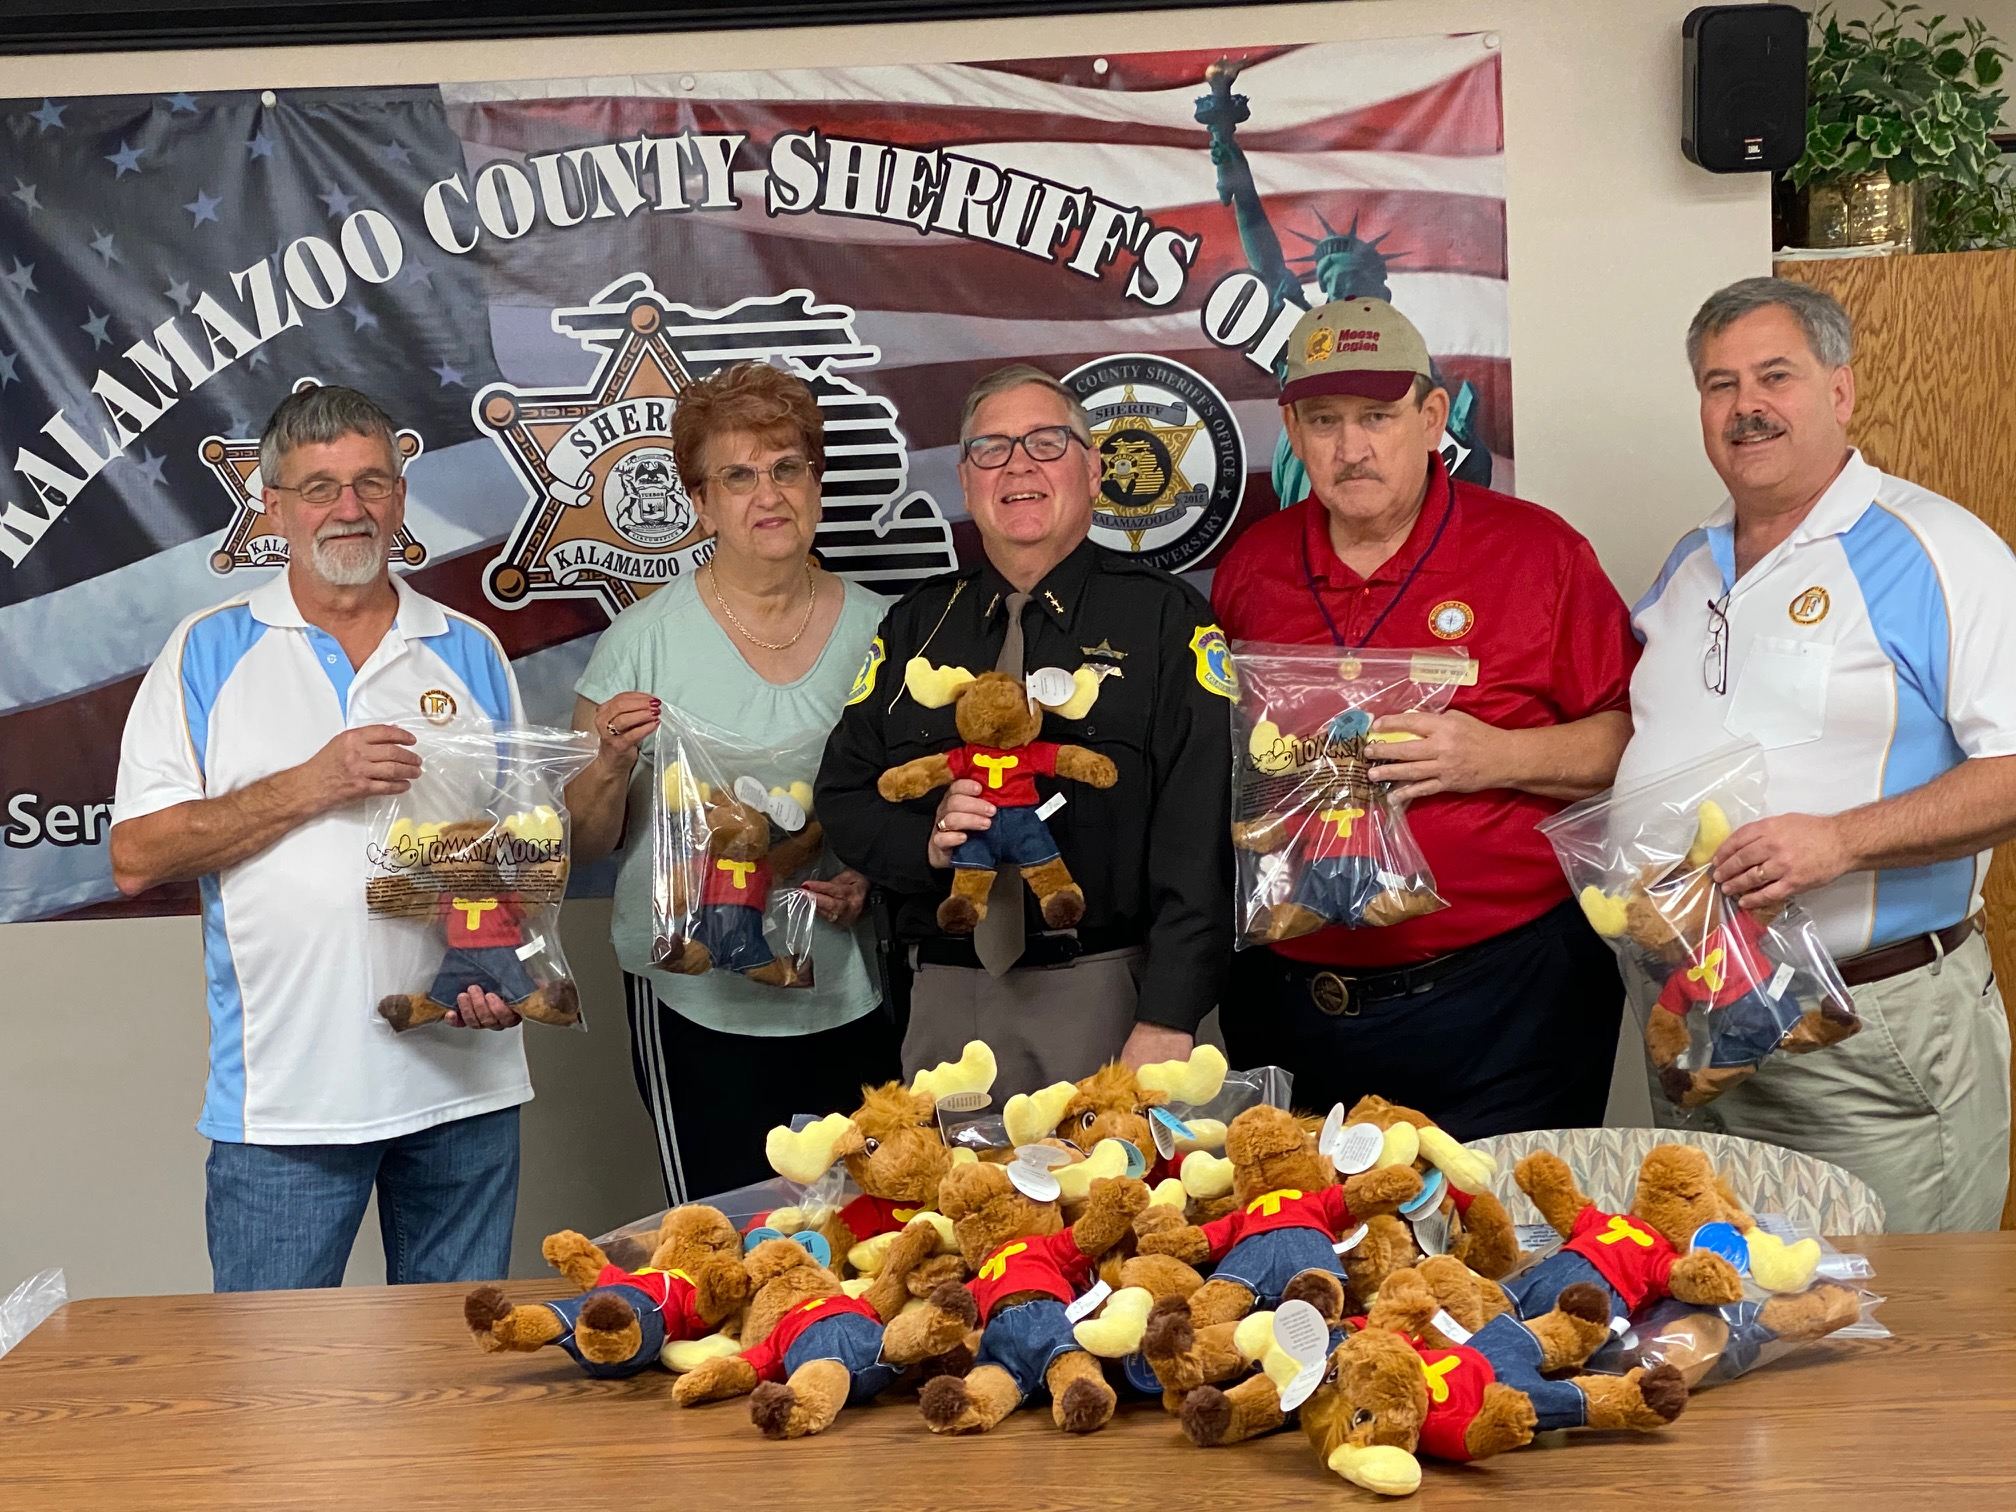 Sheriff fuller accepts the donation from the Moose Lodge